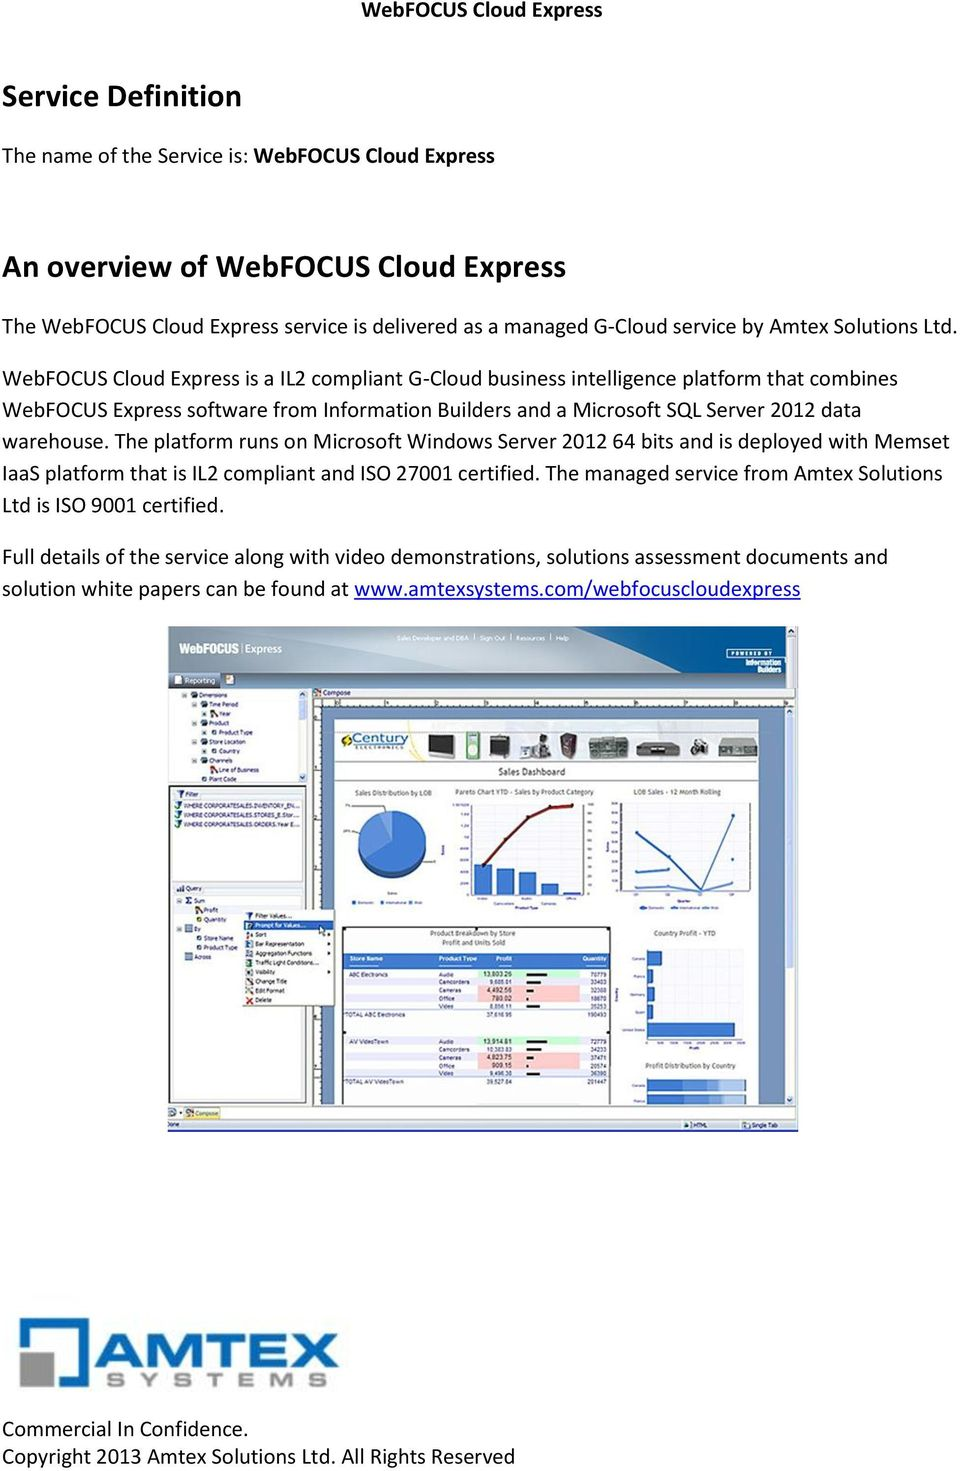 WebFOCUS Cloud Express is a IL2 compliant G-Cloud business intelligence platform that combines WebFOCUS Express software from Information Builders and a Microsoft SQL Server 2012 data warehouse.